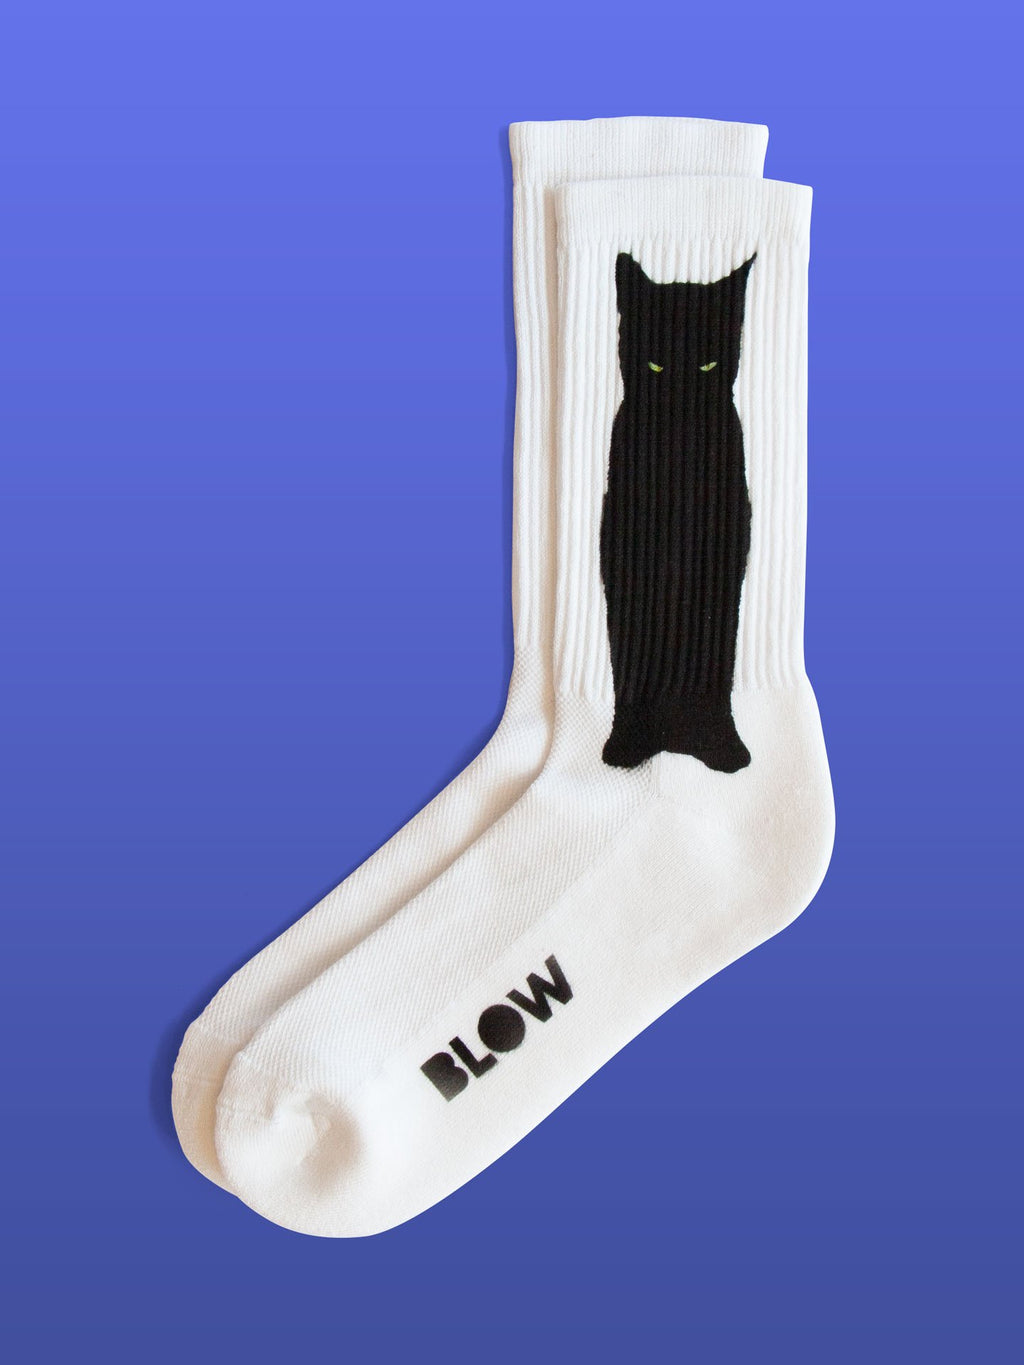 LAILA - Organic cotton crew socks with bamboo - BLOW London